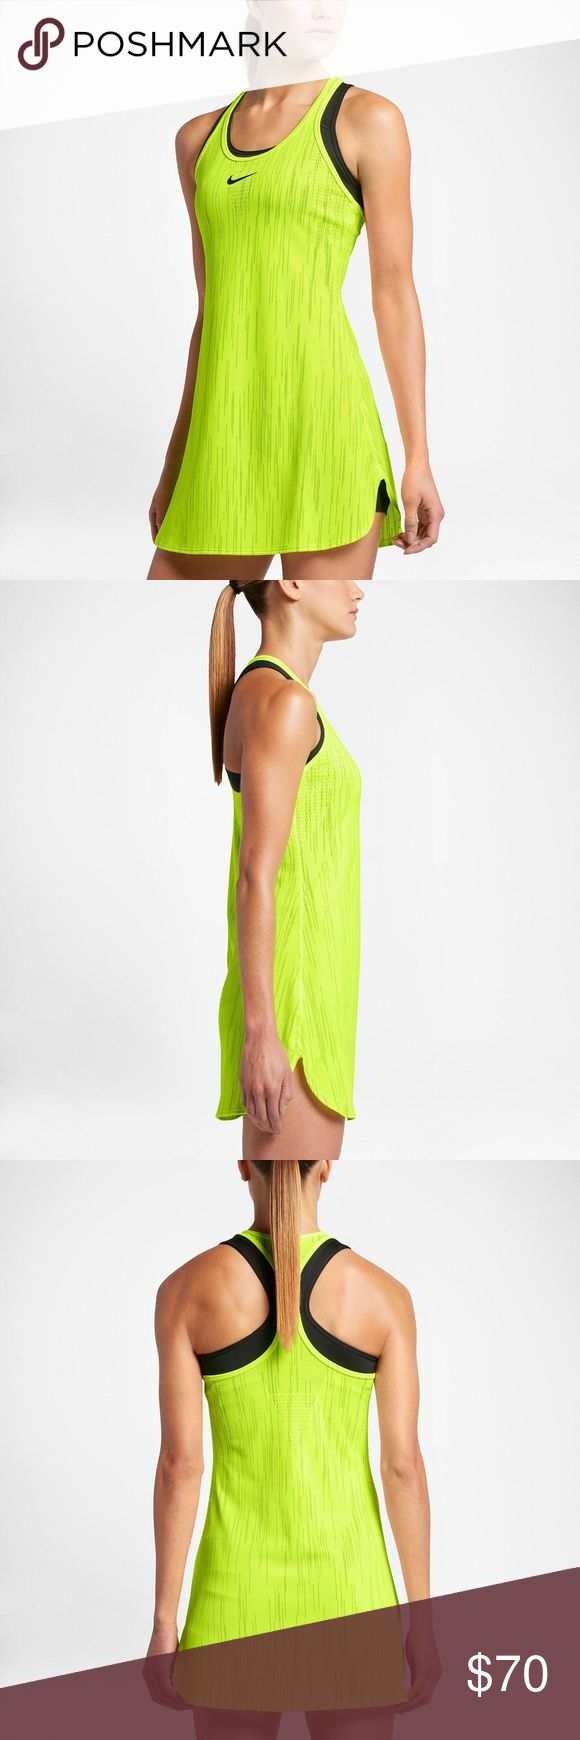 [NIKE] Tennis Dress **NIKE** Tennis Dress. Ventilation in high-heat zones enhances breathability. Dri-FIT technology helps keep you dry and comfortable. Seamless knit construction for a smooth feel. Racerback and split hems. 100% Polyester. (colors in picture are a little enhanced.) 💦Make an Offer.🎾 Nike Dresses